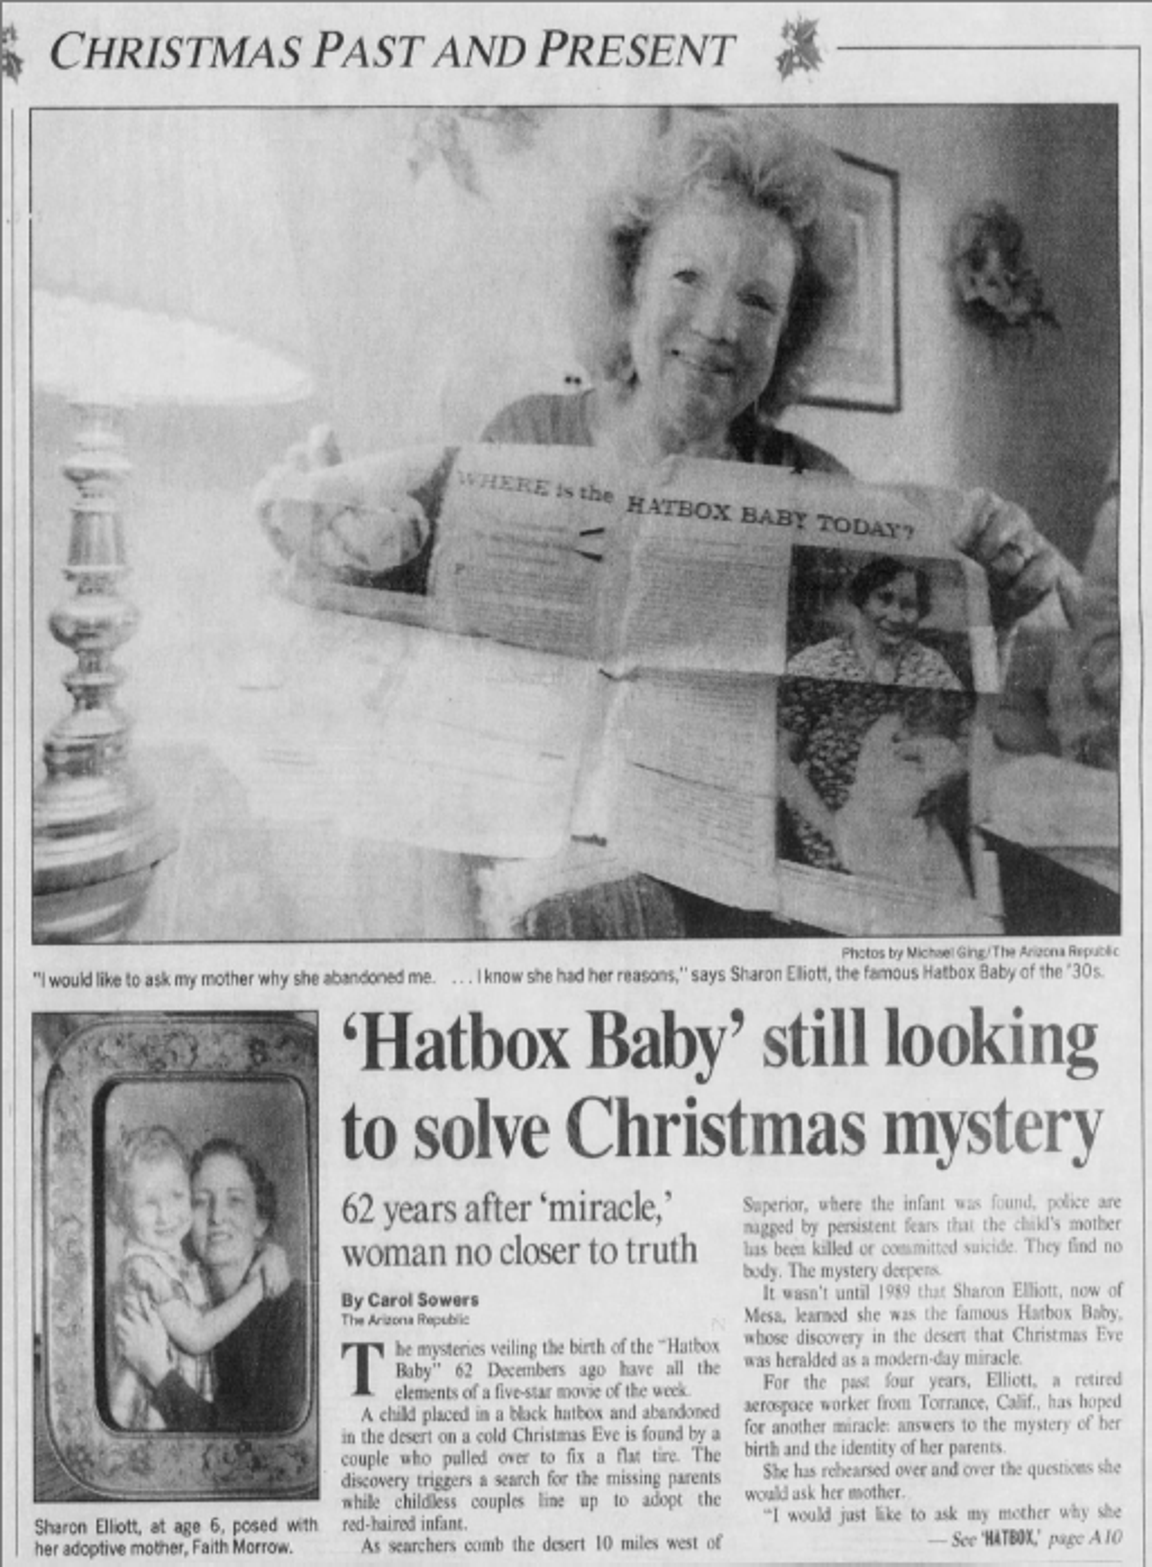 An update on Sharon Elliott's story as the Hatbox Baby as published in The Arizona Republic on Dec. 24, 1993.